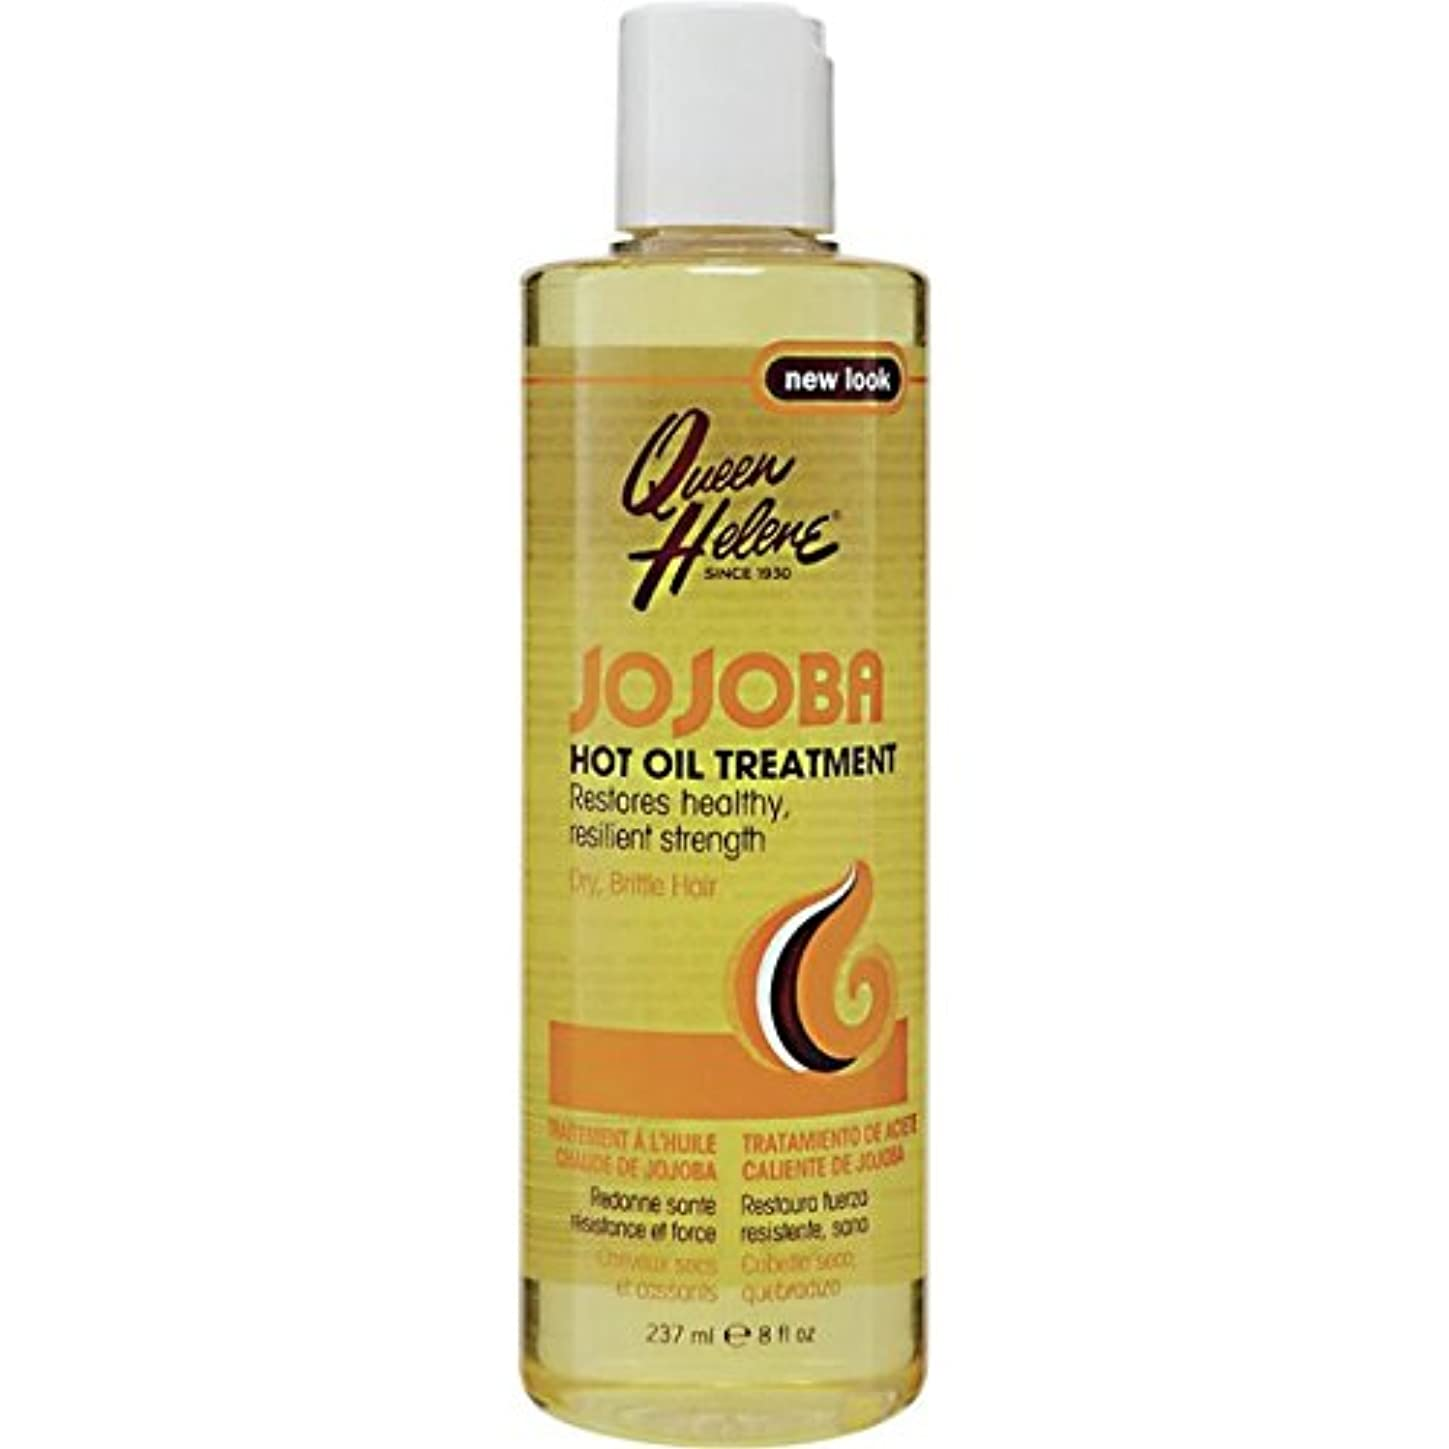 祖先大腿殉教者Queen Helene Jojoba Hot Oil 235 ml Treatment (並行輸入品)